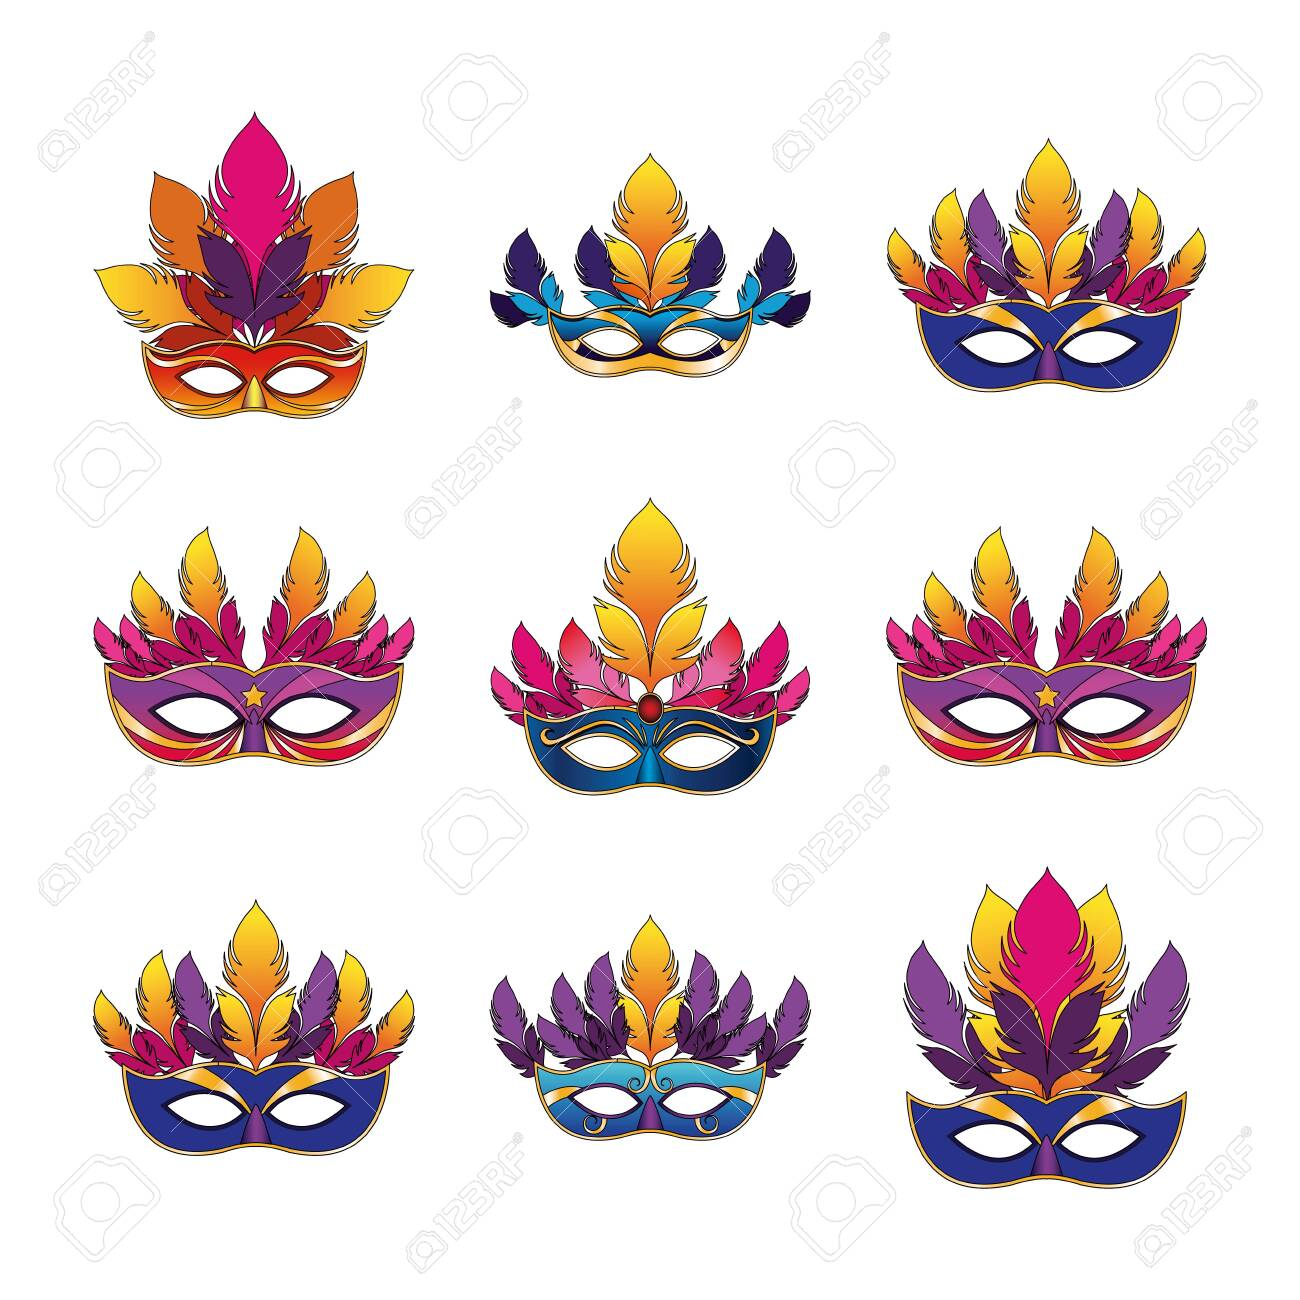 icon set of carnival masks with feathers over white background, vector illustration - 134896378